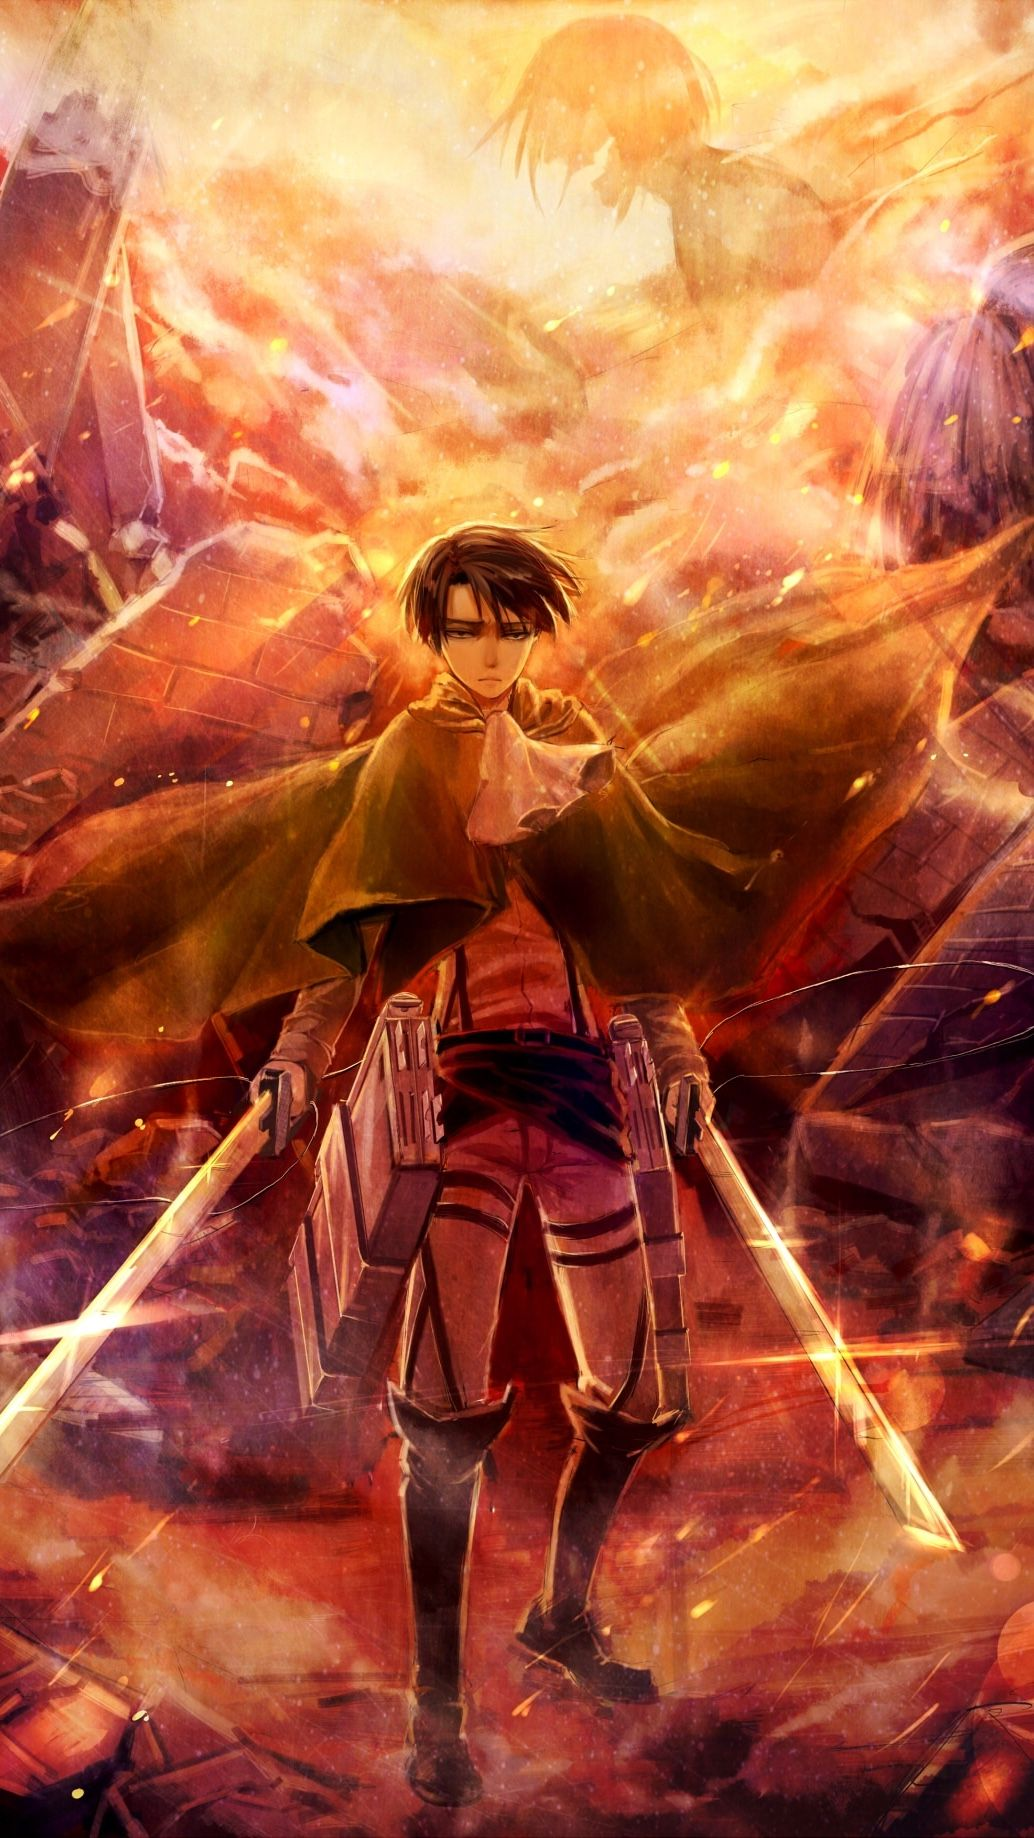 Check The Link To Download Hd Wallpapers Of Attack On Titan And More Pc Phone Anime Attack Attack On Titan Anime Attack On Titan Fanart Titans Anime